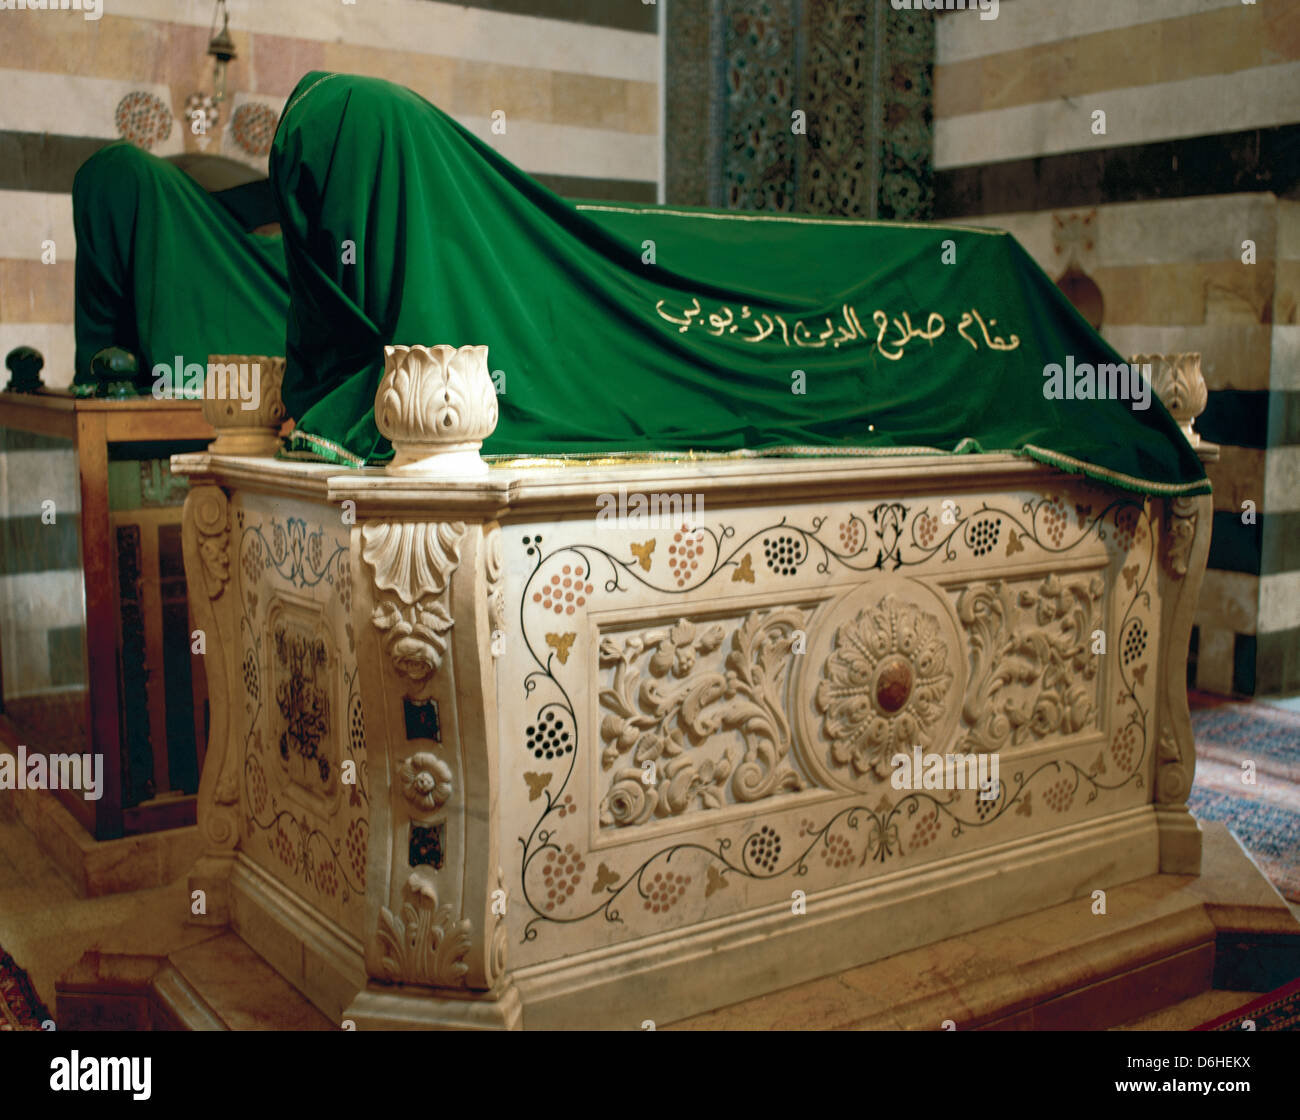 Mausoleum of Saladin (1138-1193). Marble coffin gift from Wilhem II next to a wooden tomb that holds Saladin's - Stock Image